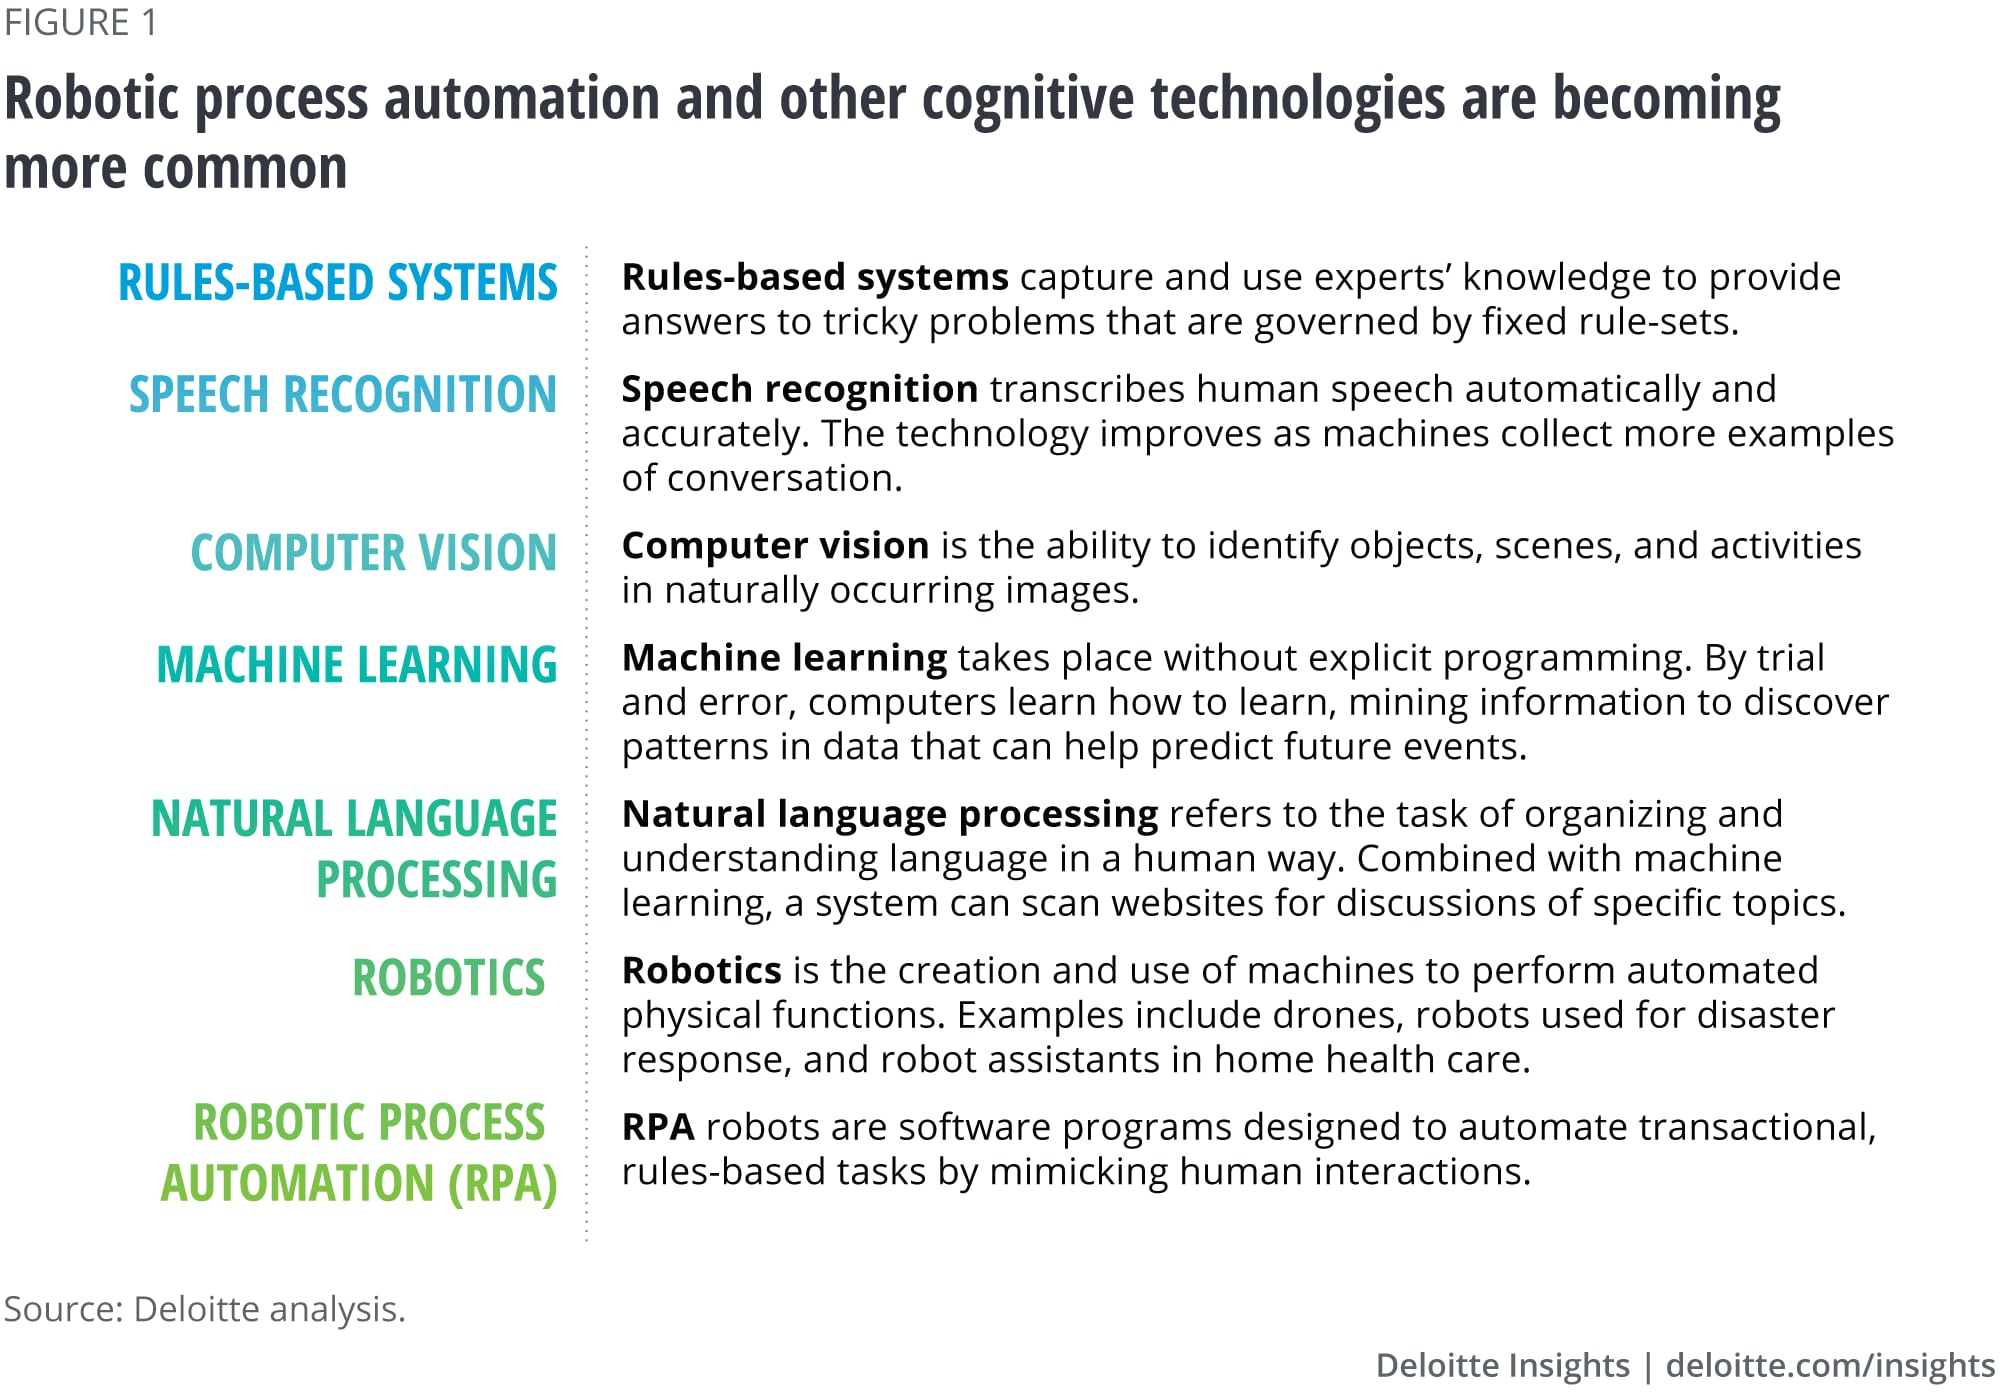 Robotic process automation (RPA) and key cognitive technologies